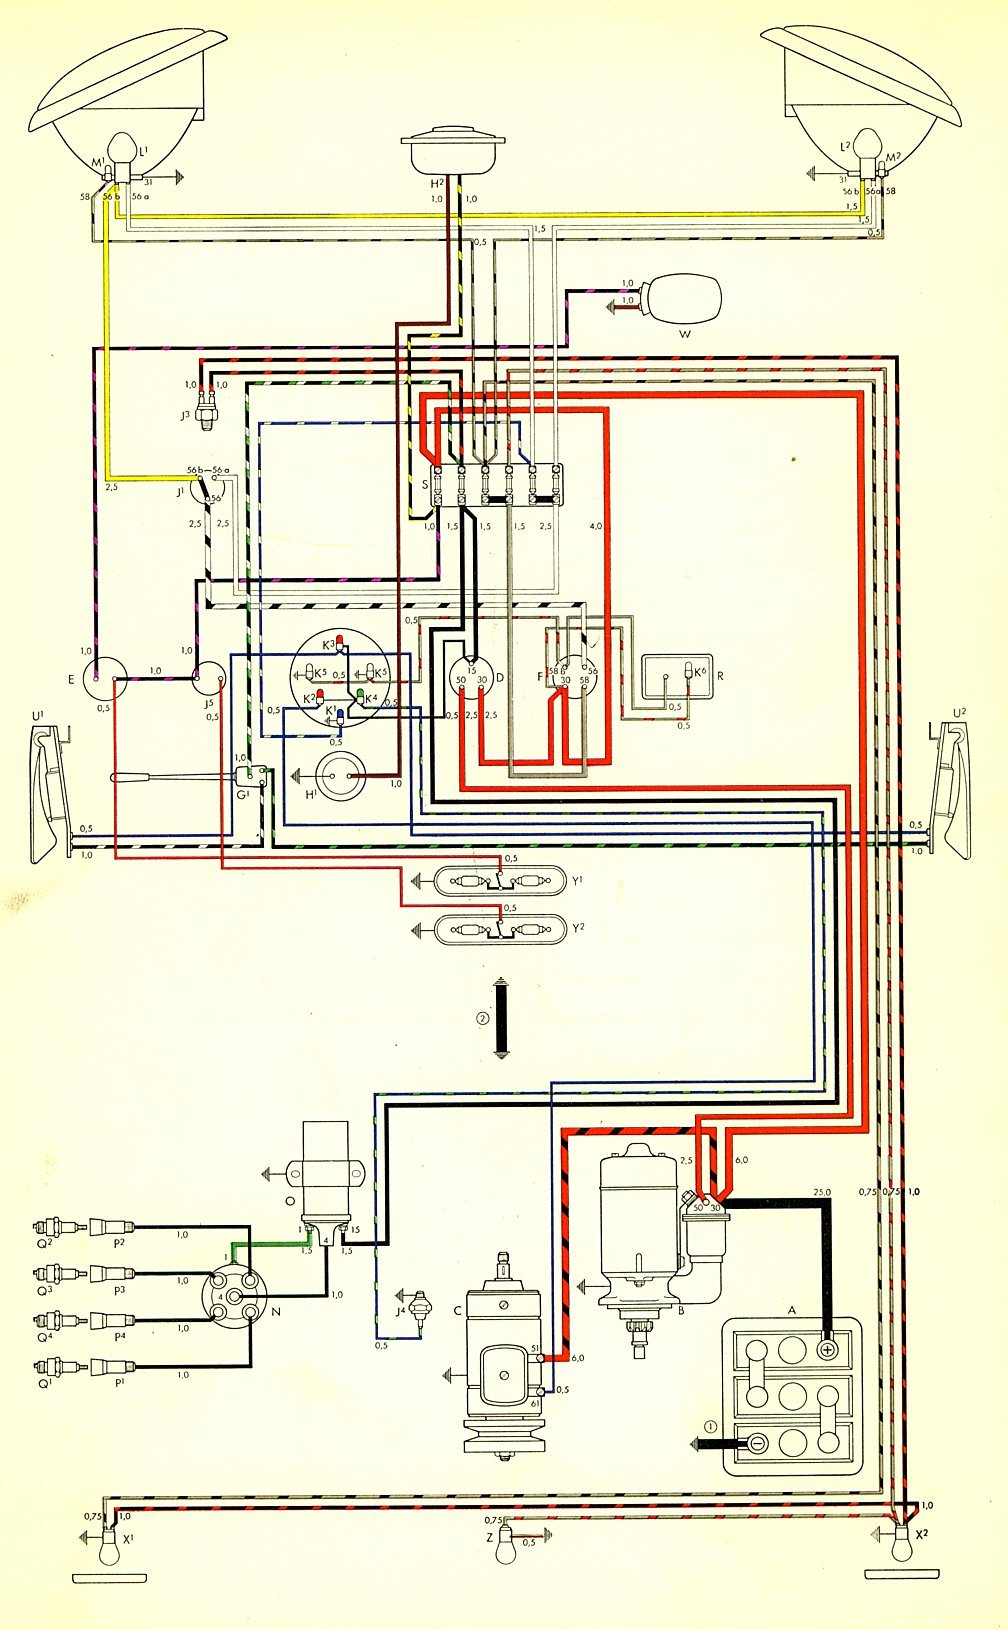 bus_59 bus wiring diagram vw wiring harness diagram \u2022 wiring diagrams j  at mifinder.co